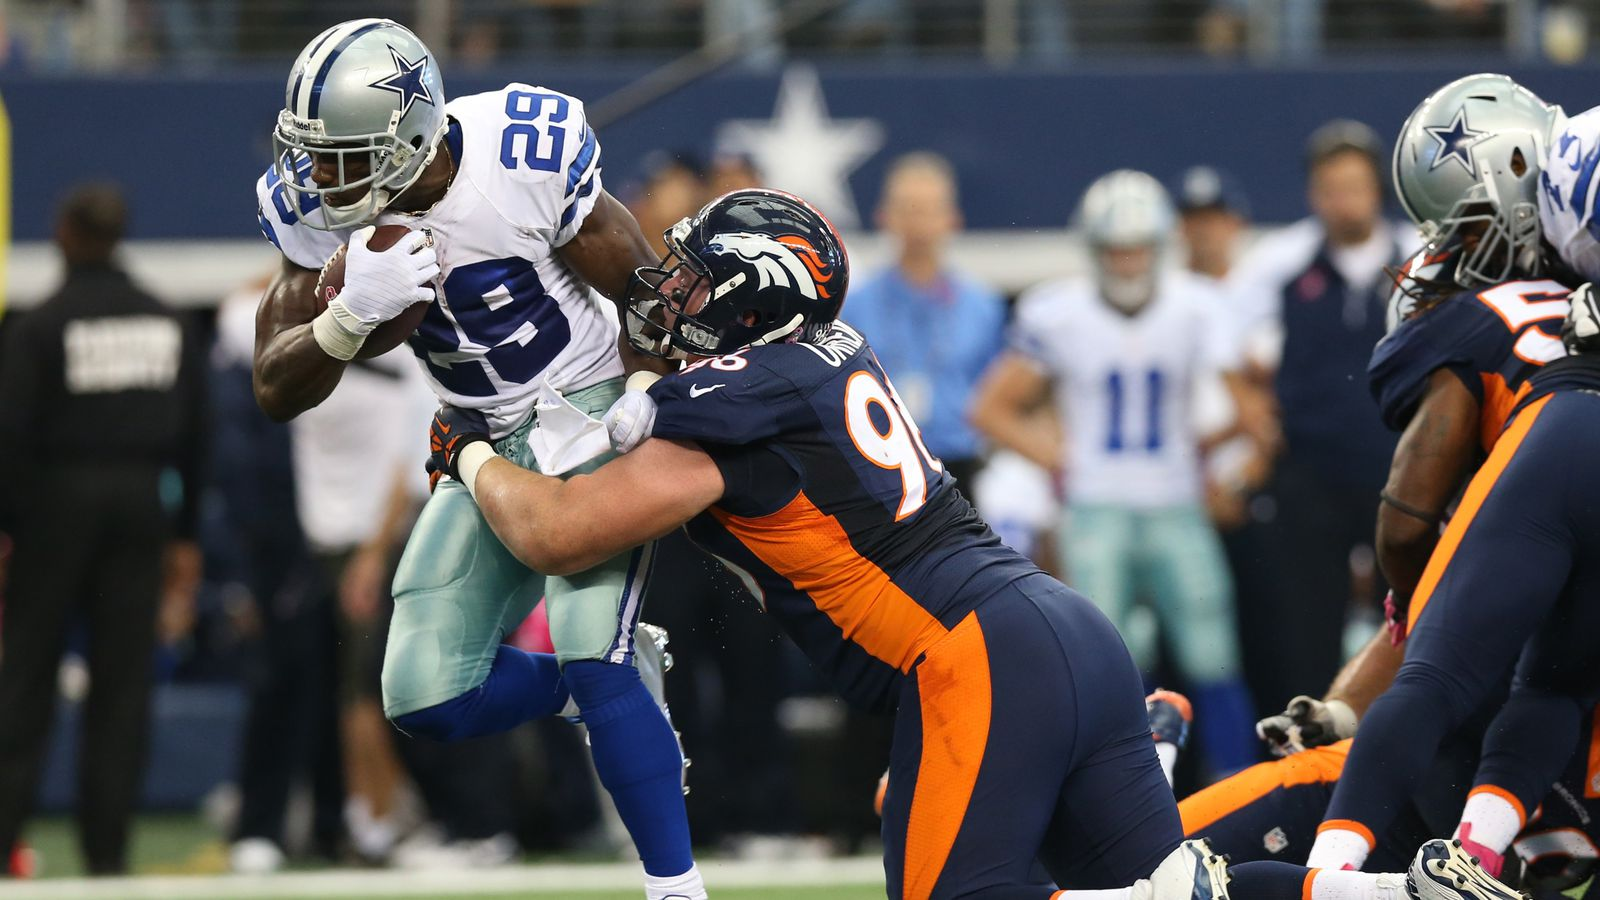 cowboys vs broncos - photo #11